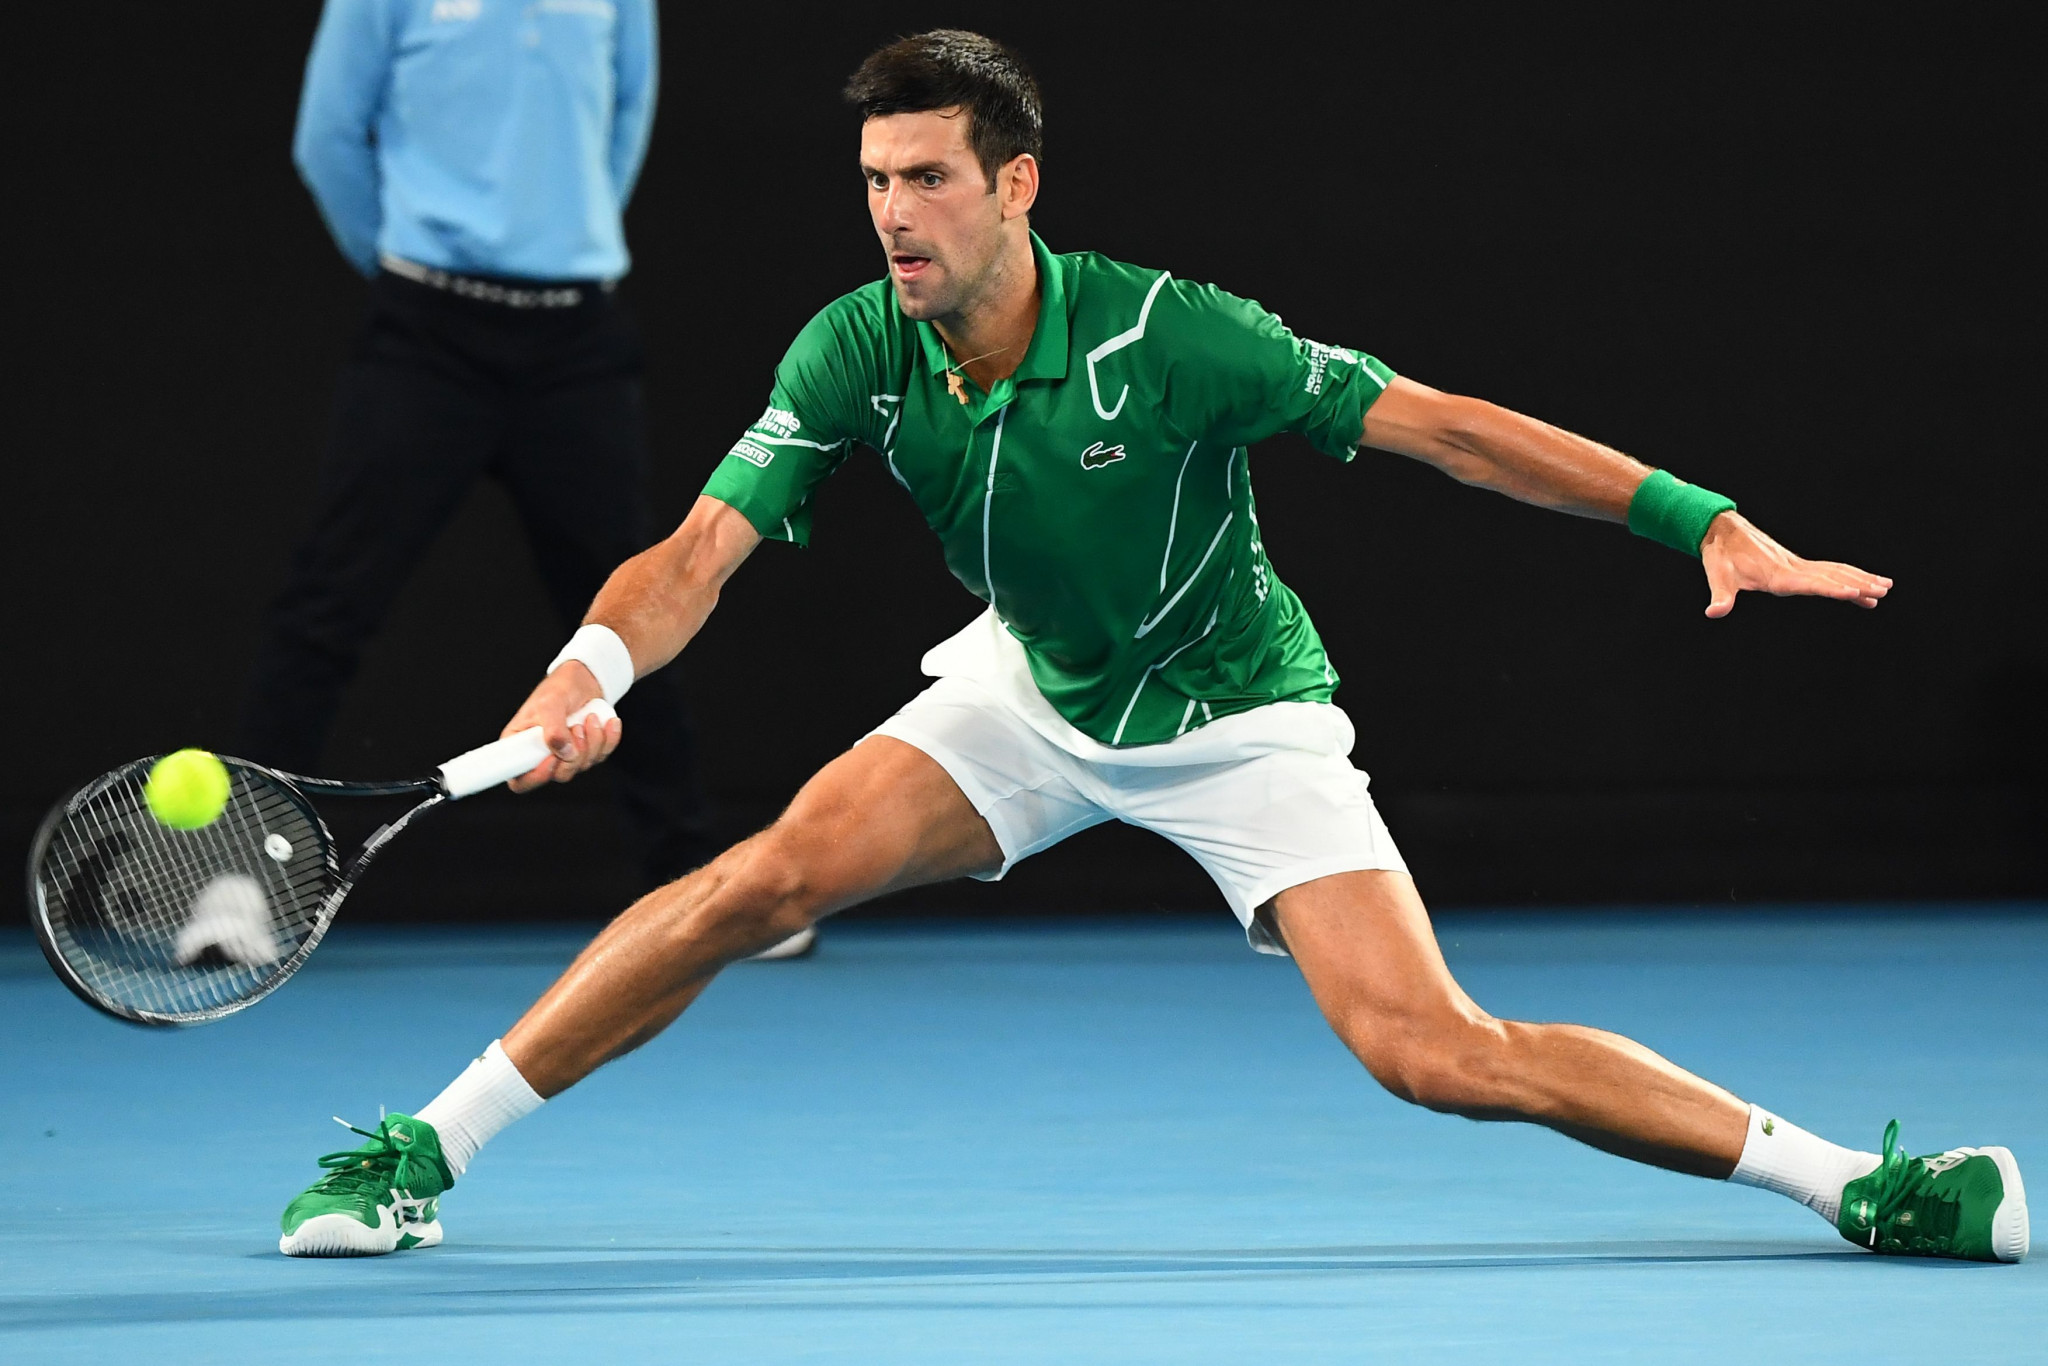 Serbia's Novak Djokovic was the winner of the men's competition at the 2019 Australian Open ©Getty Images